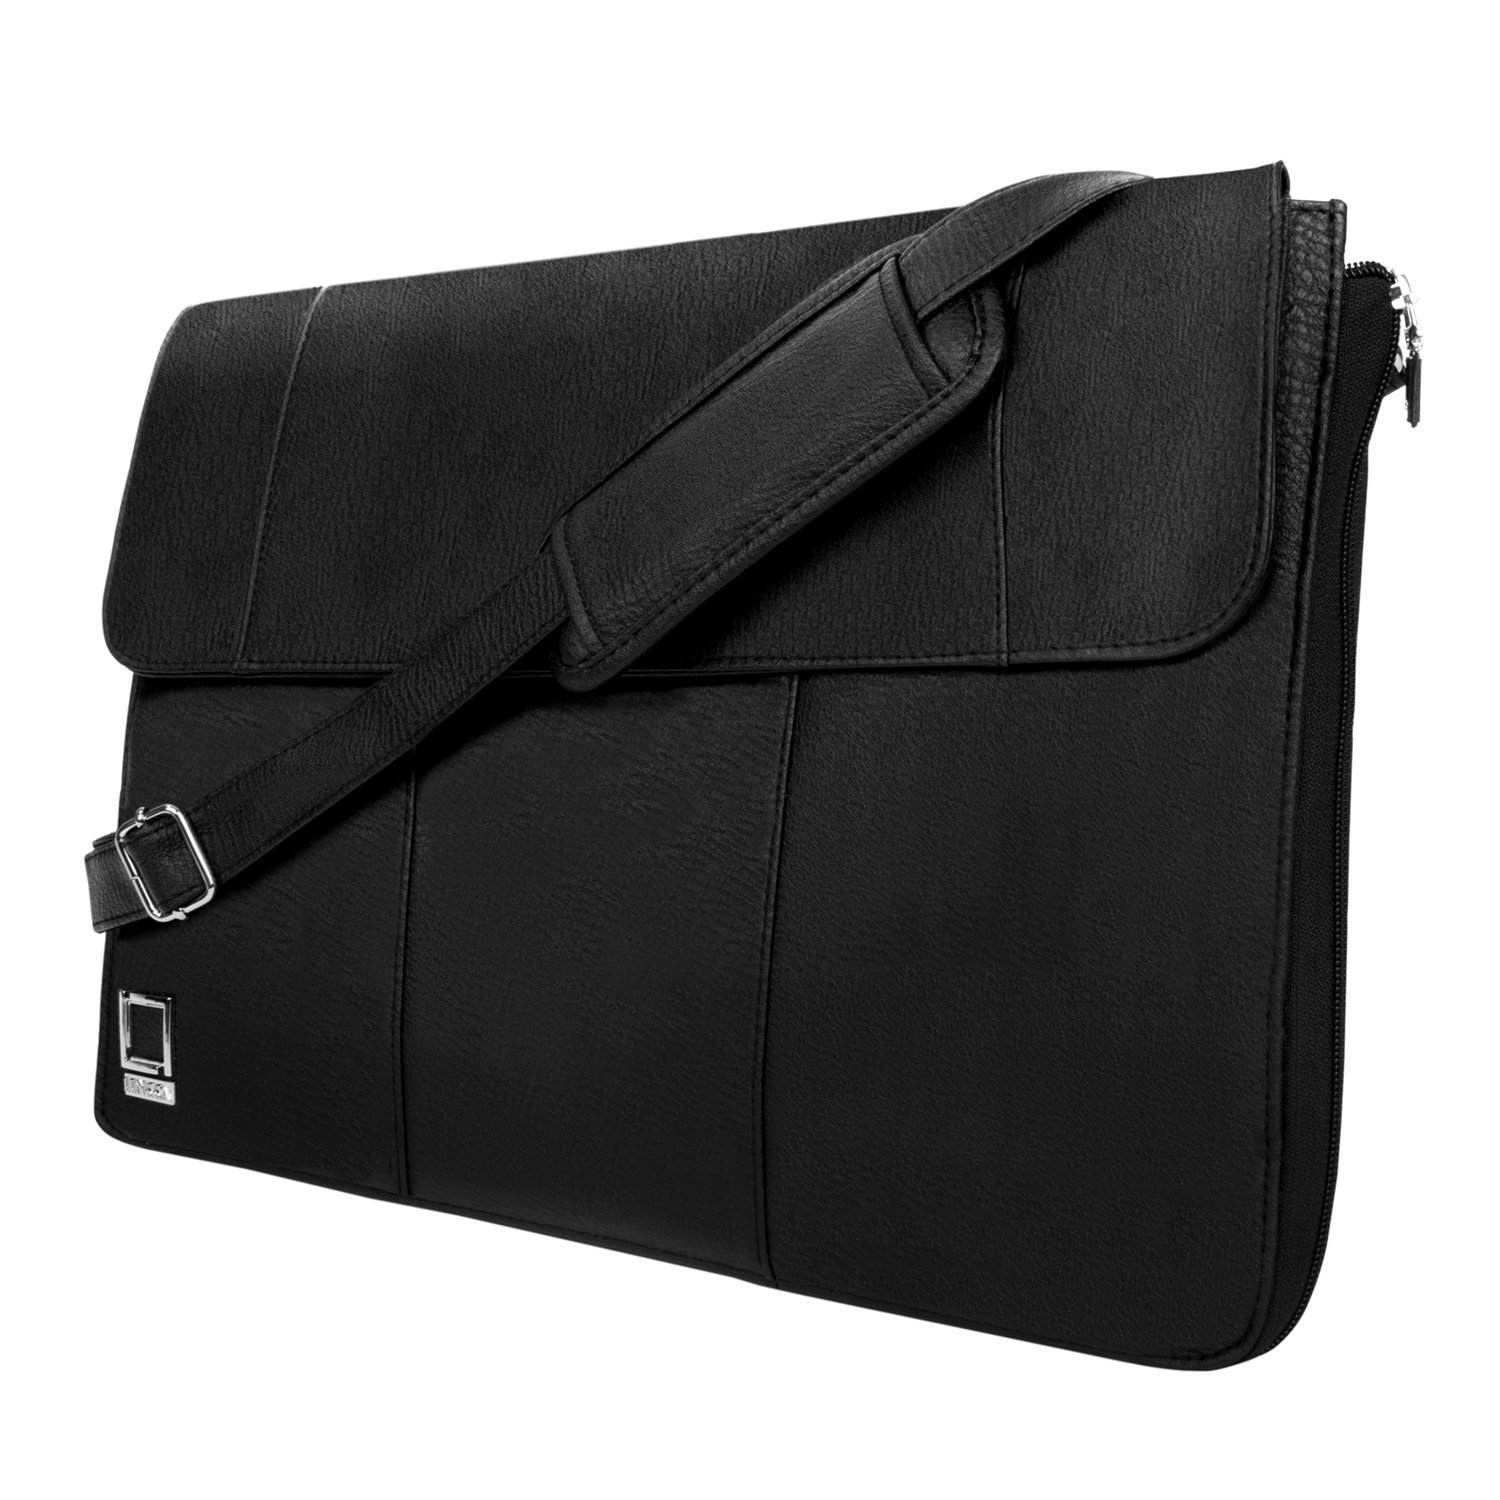 Lencca Axis 13 Inch Black Slim Texture Vegan Leather Laptop Crossbody Shoulder Bag for Apple iPad Pro / iPad Pro II 12.9''